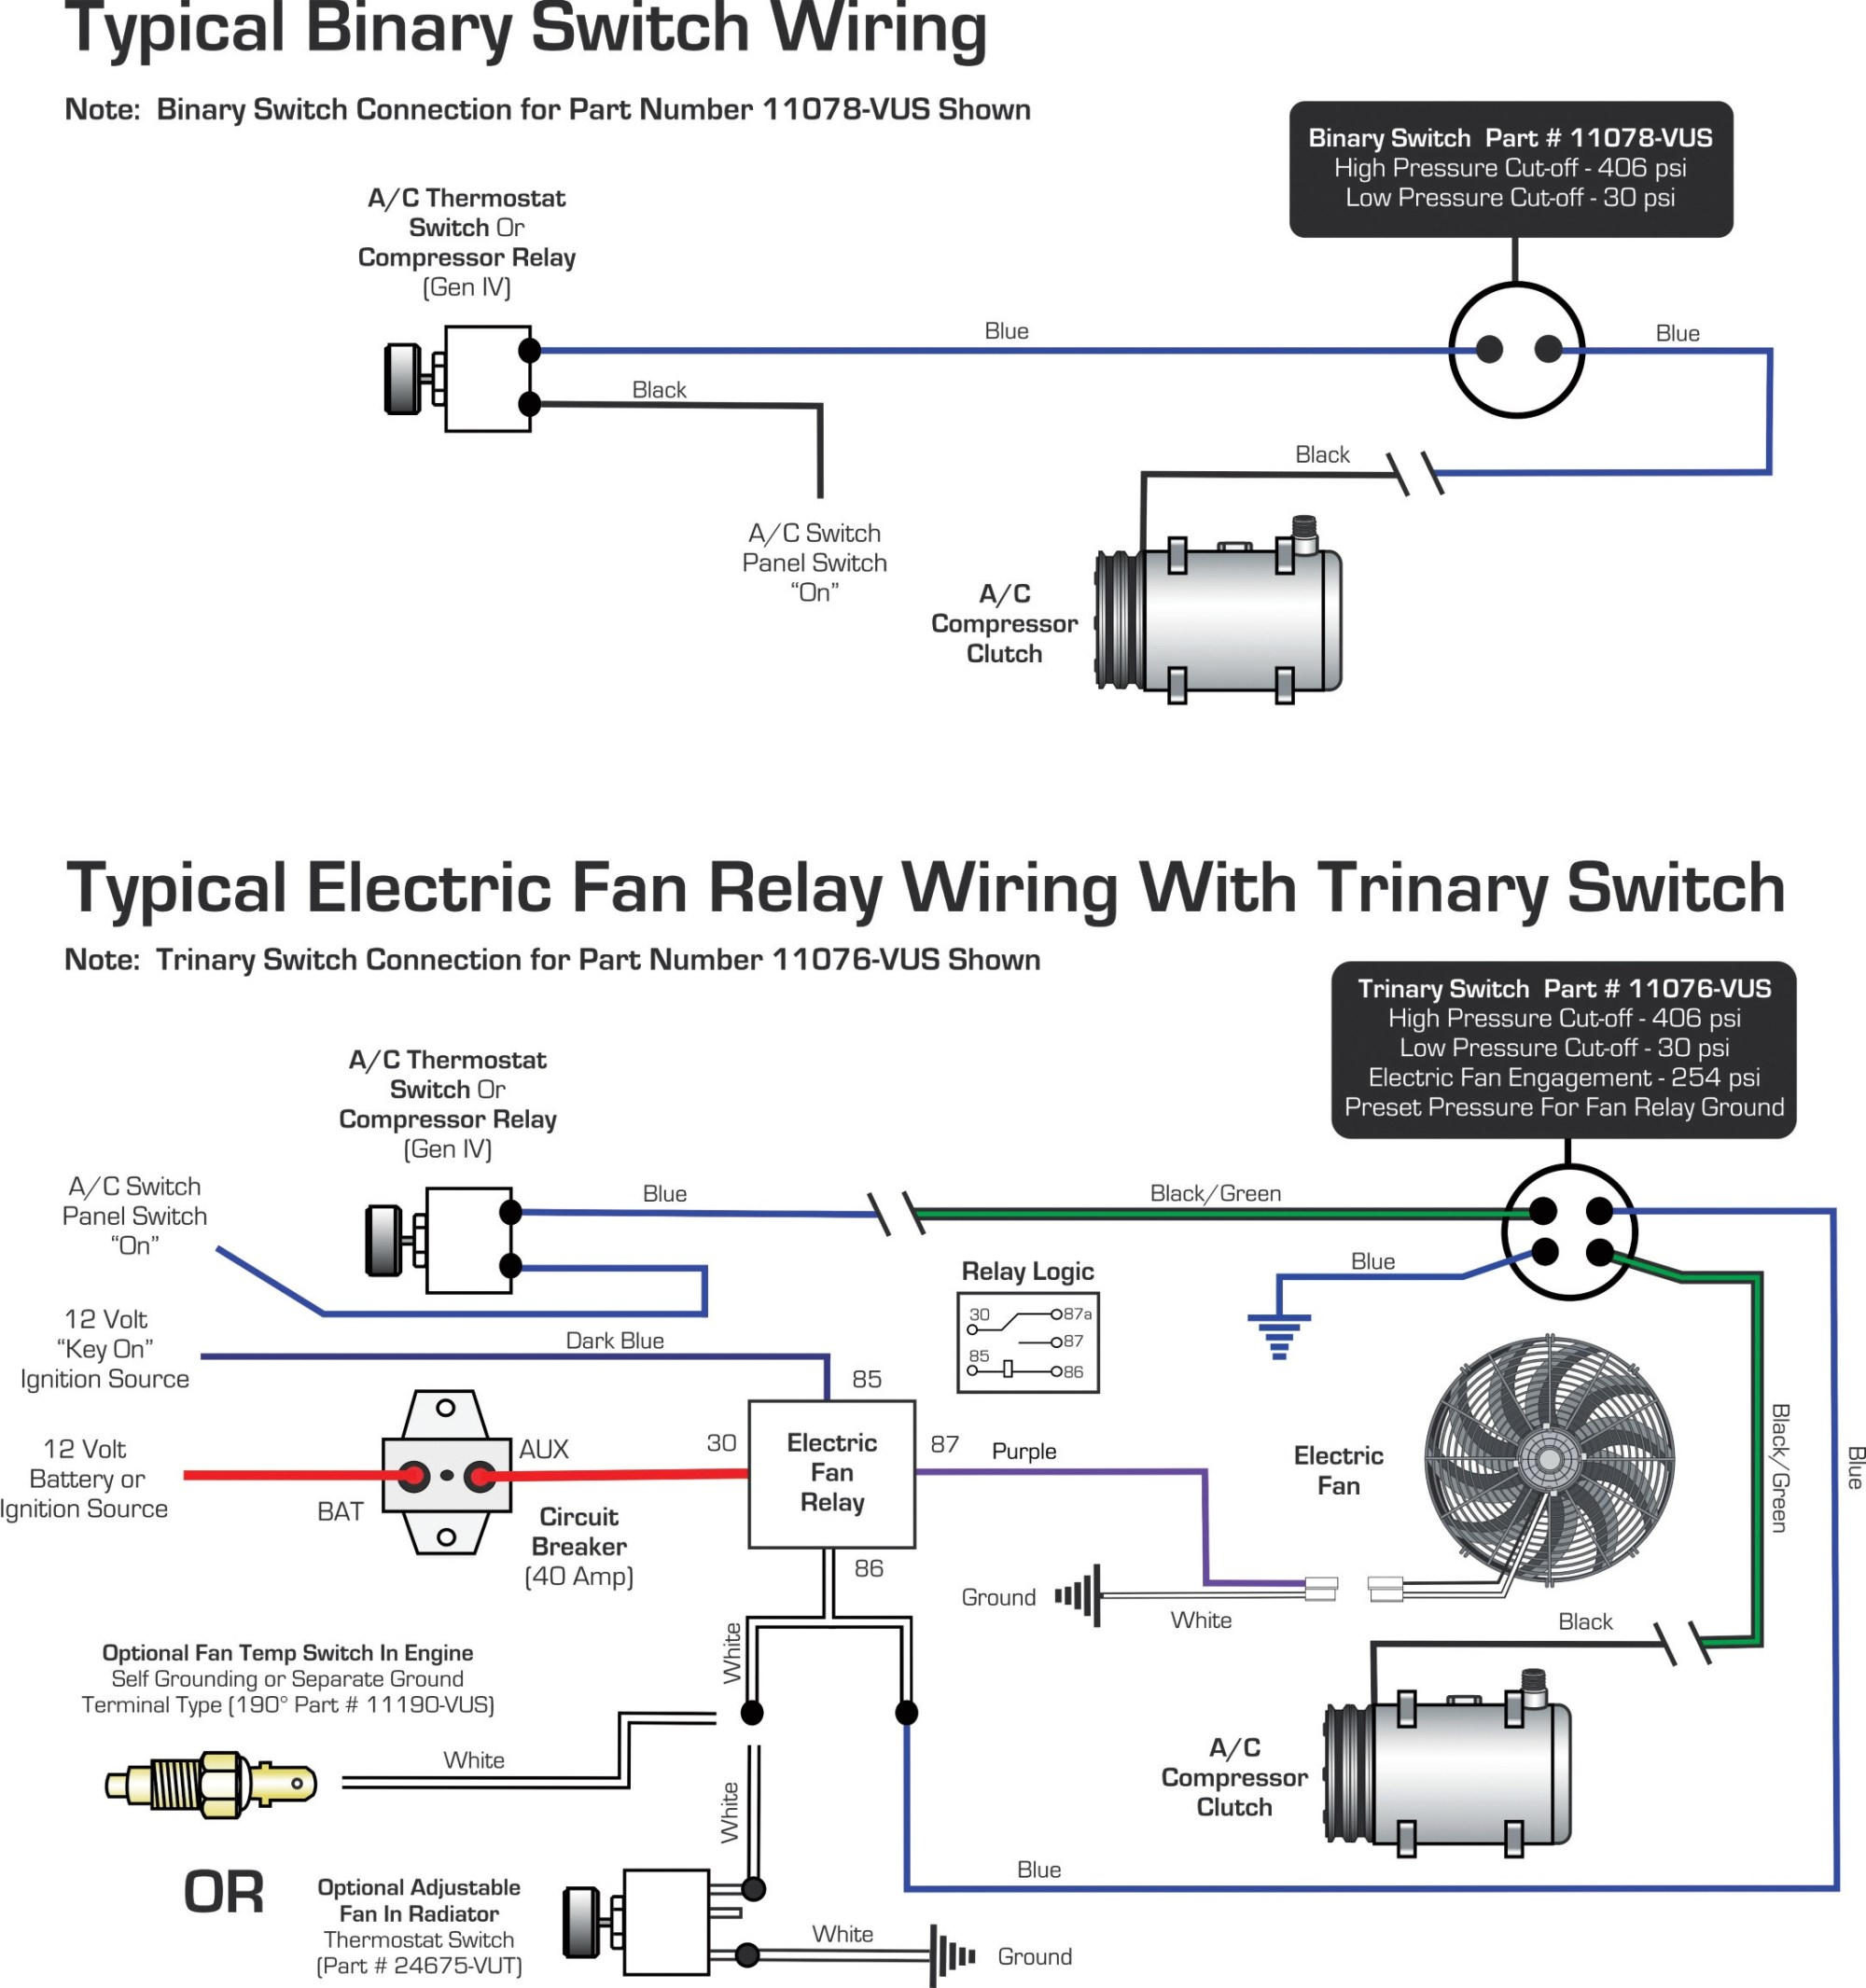 hight resolution of vintage air blog archive wiring diagrams binary switch trinary rh vintageair com air conditioner fan wiring